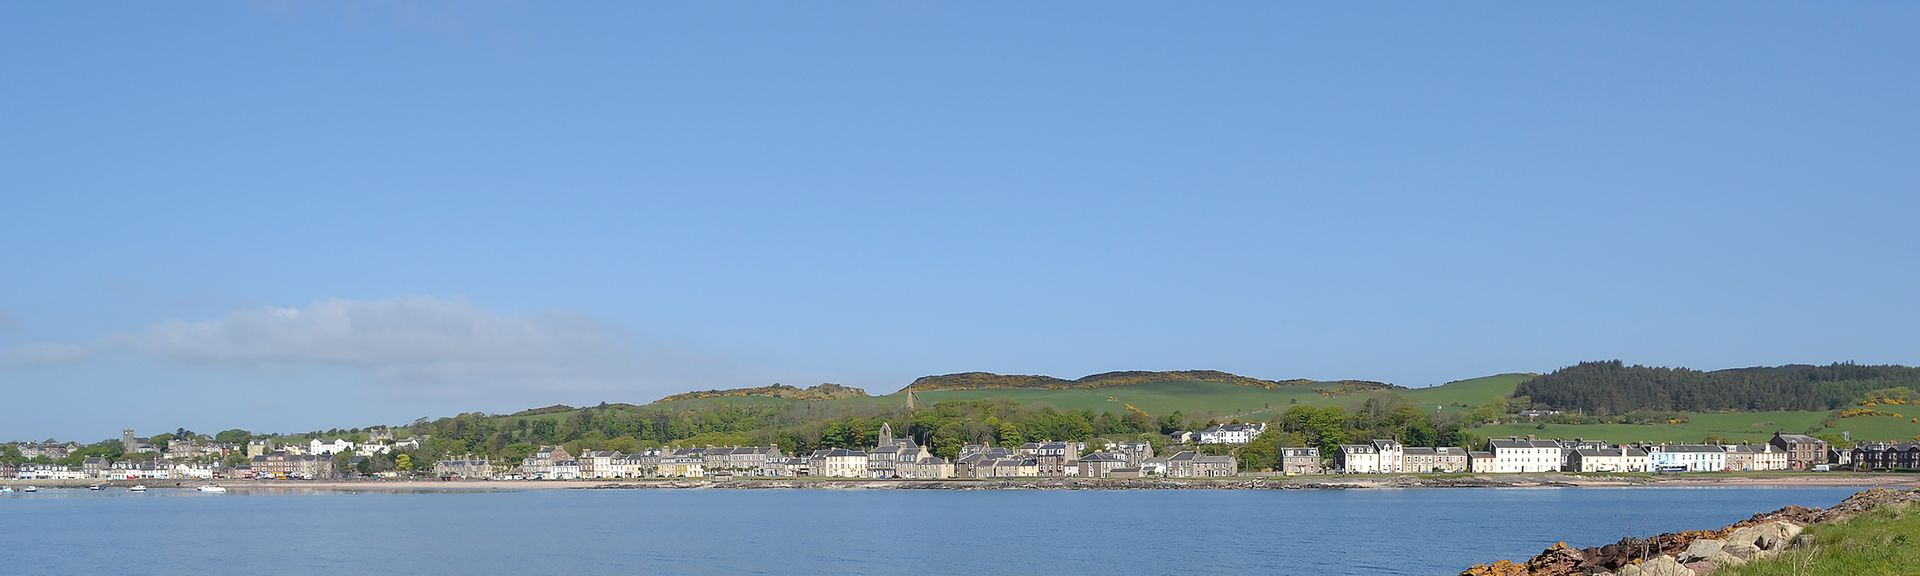 Toward, Dunoon, Argyll and Bute, UK